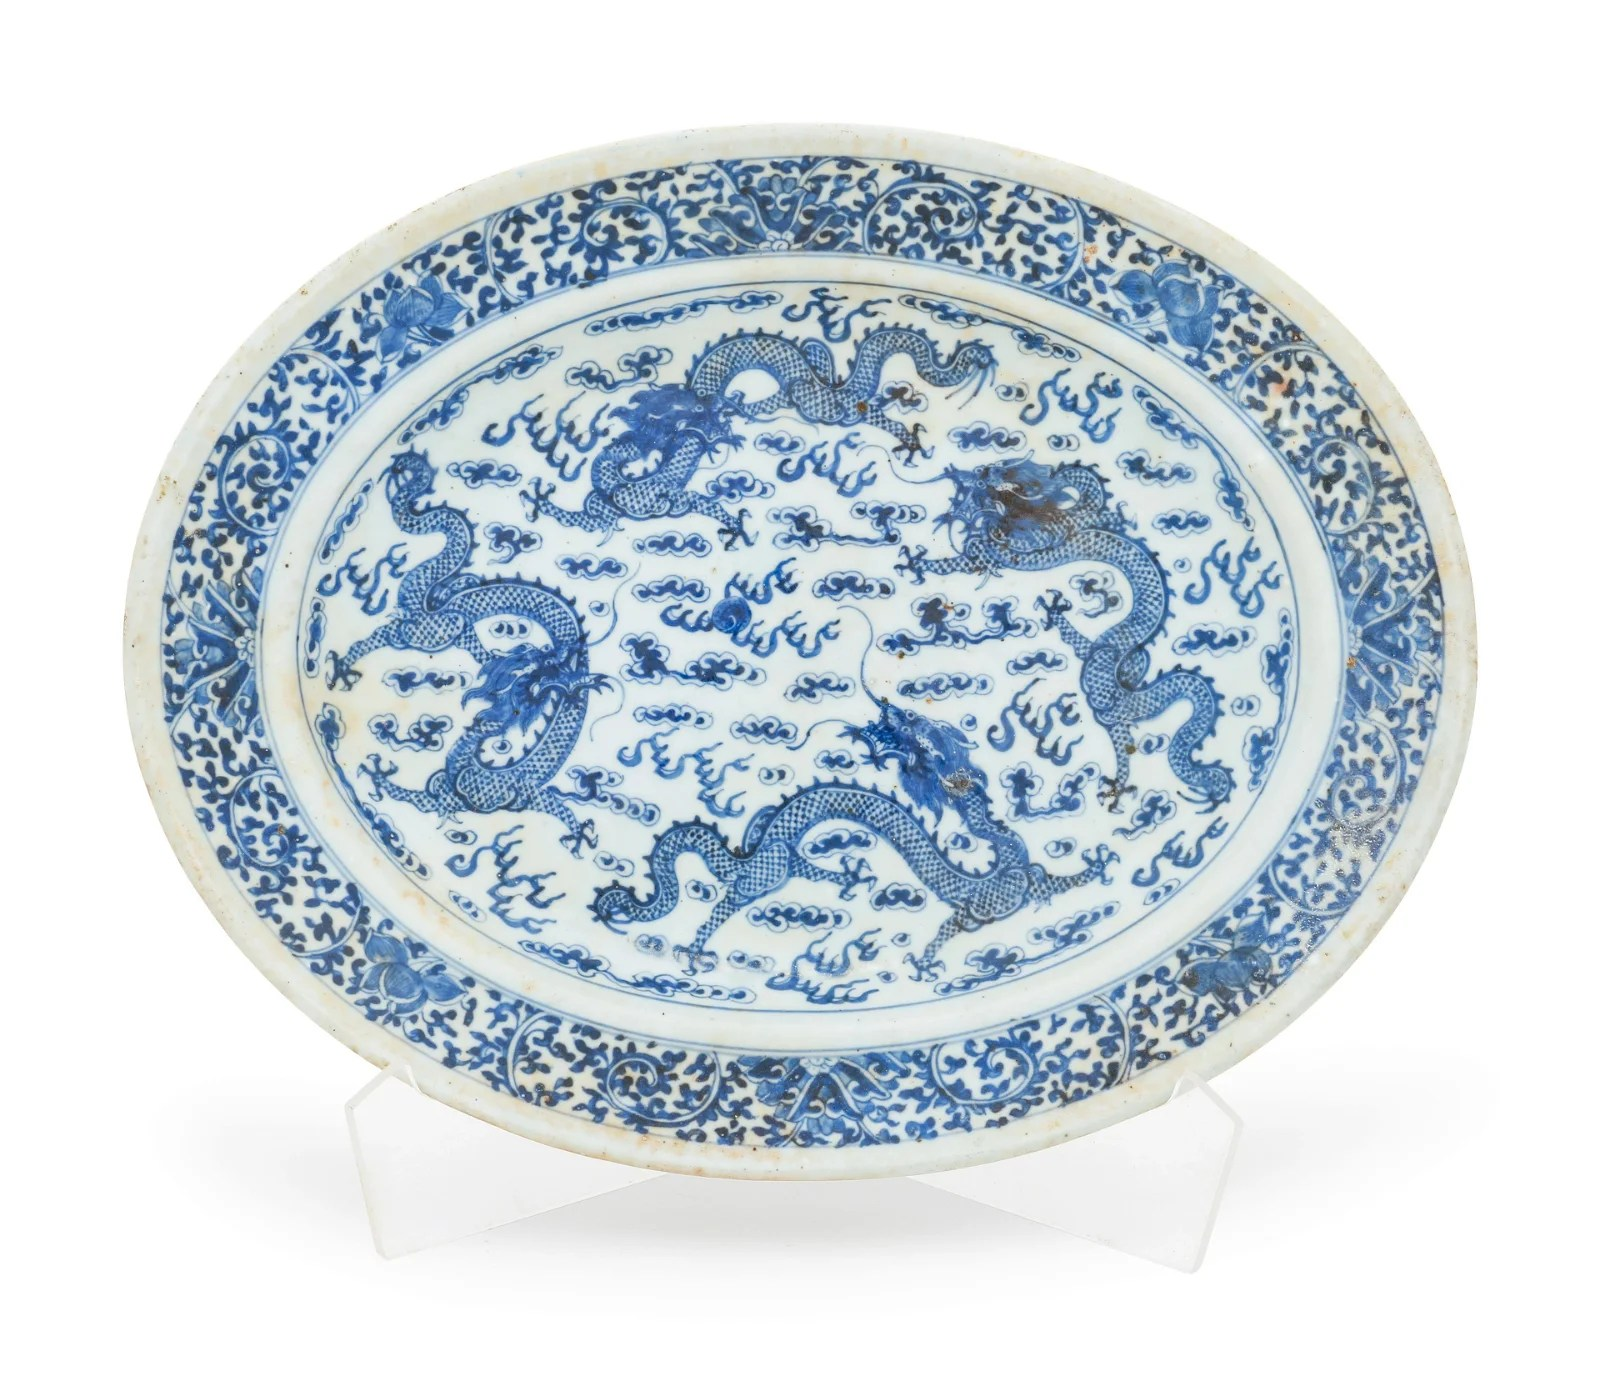 A Blue and White Porcelain